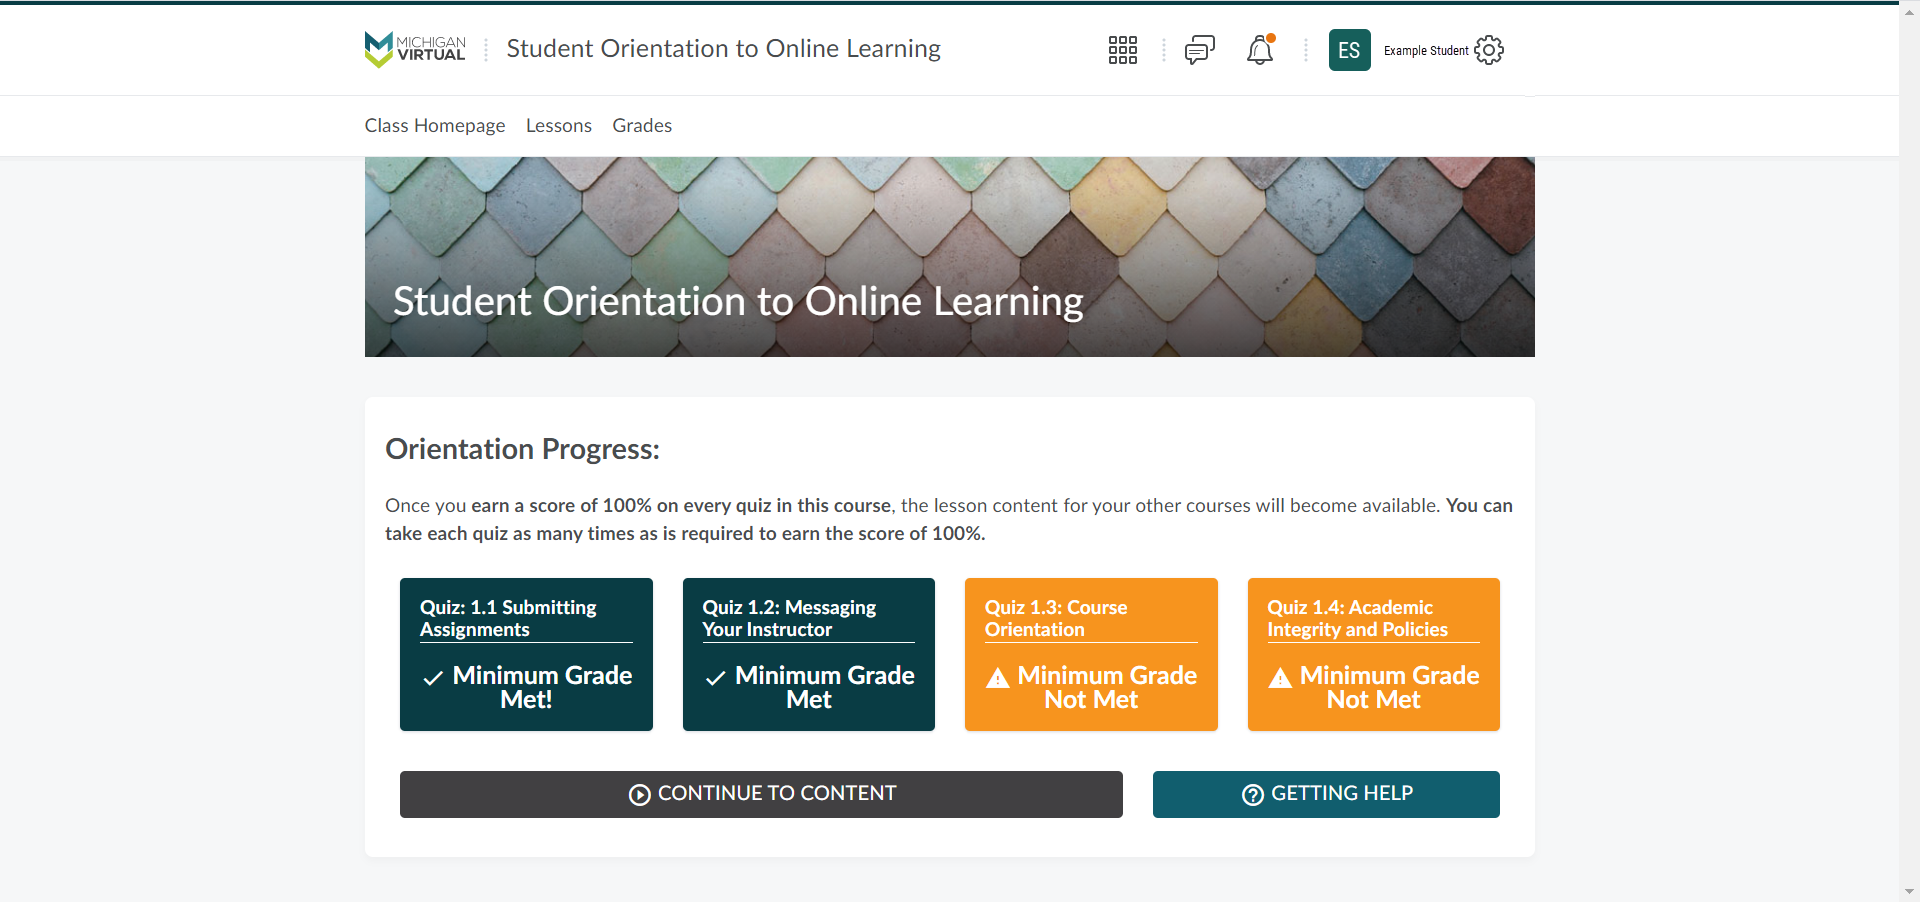 The class homepage for the Student Orientation to Online Learning course appears showing Orientation Progress. The first and second quiz tiles are showing a teal background indicating completion. The third and forth quiz tiles appear in orange indicating that the minimum grade was not met.